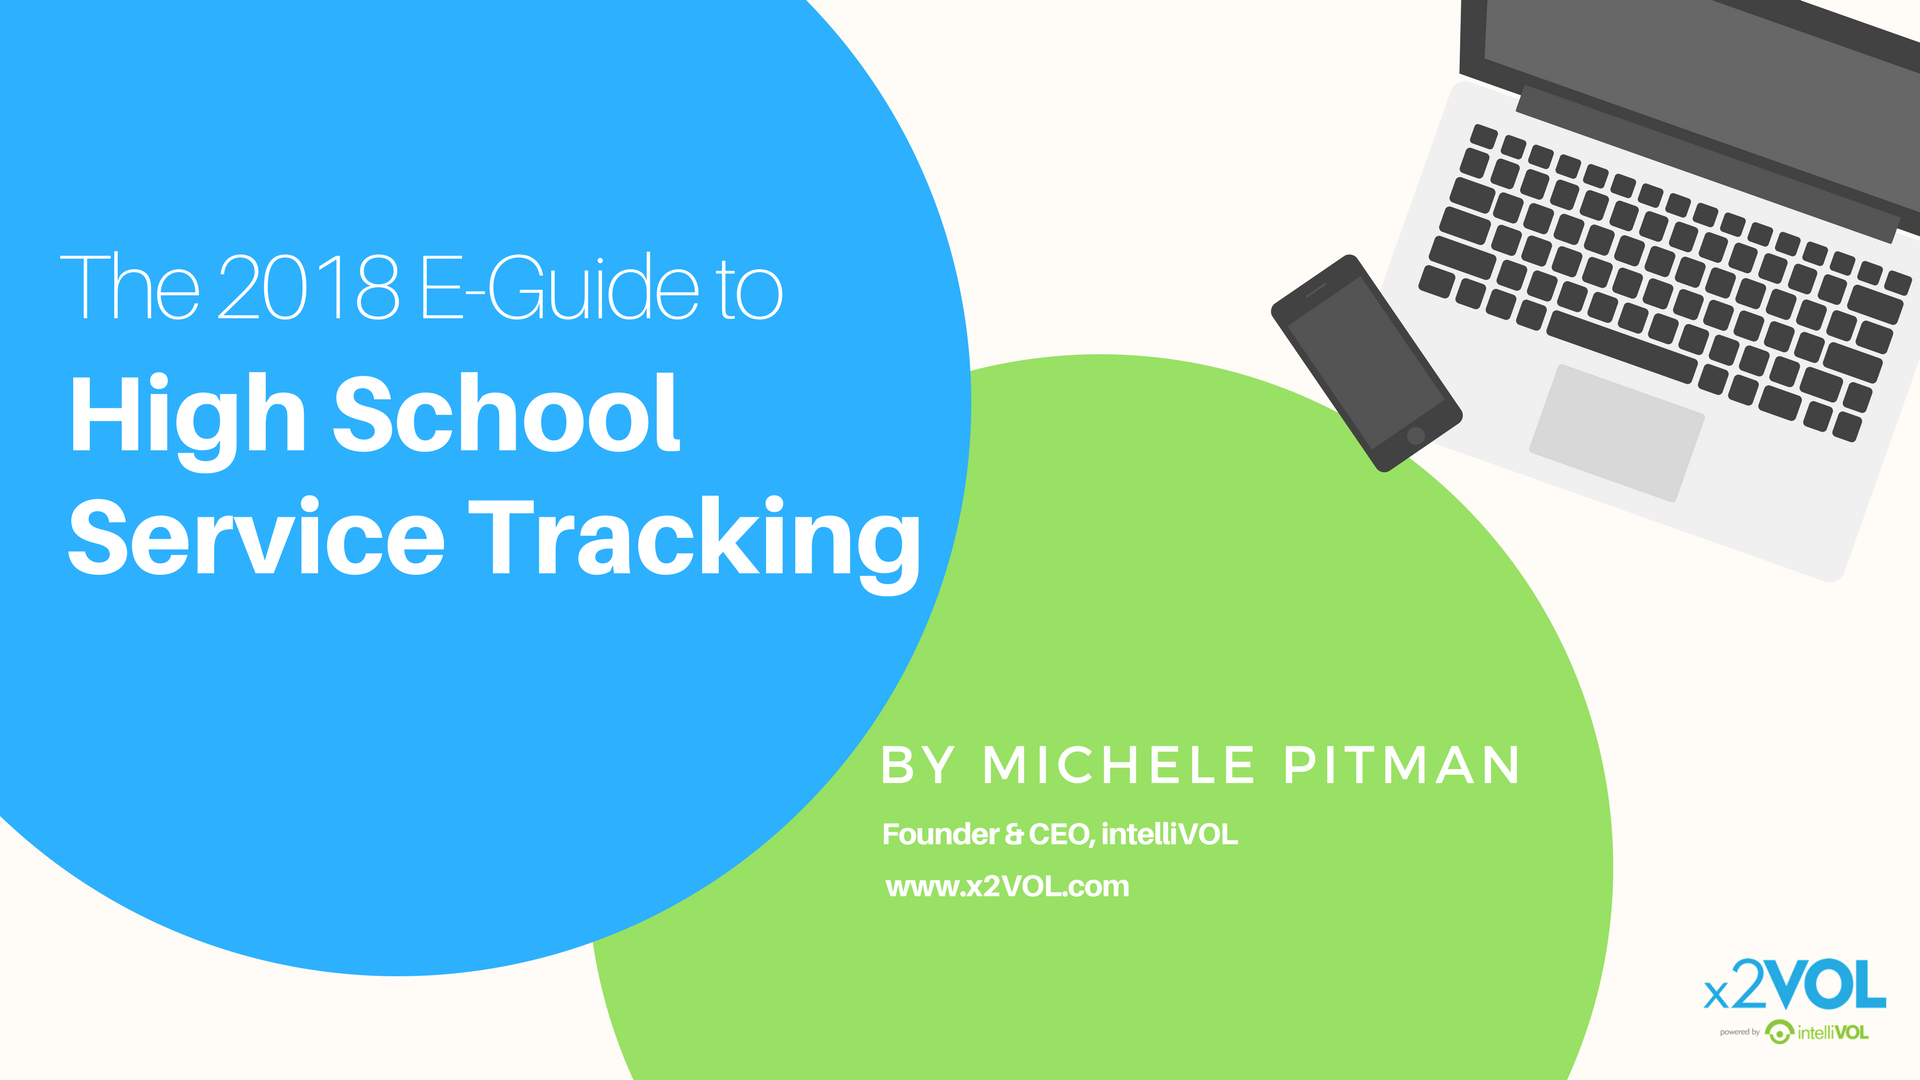 2018 E-Guide to High School Service Tracking